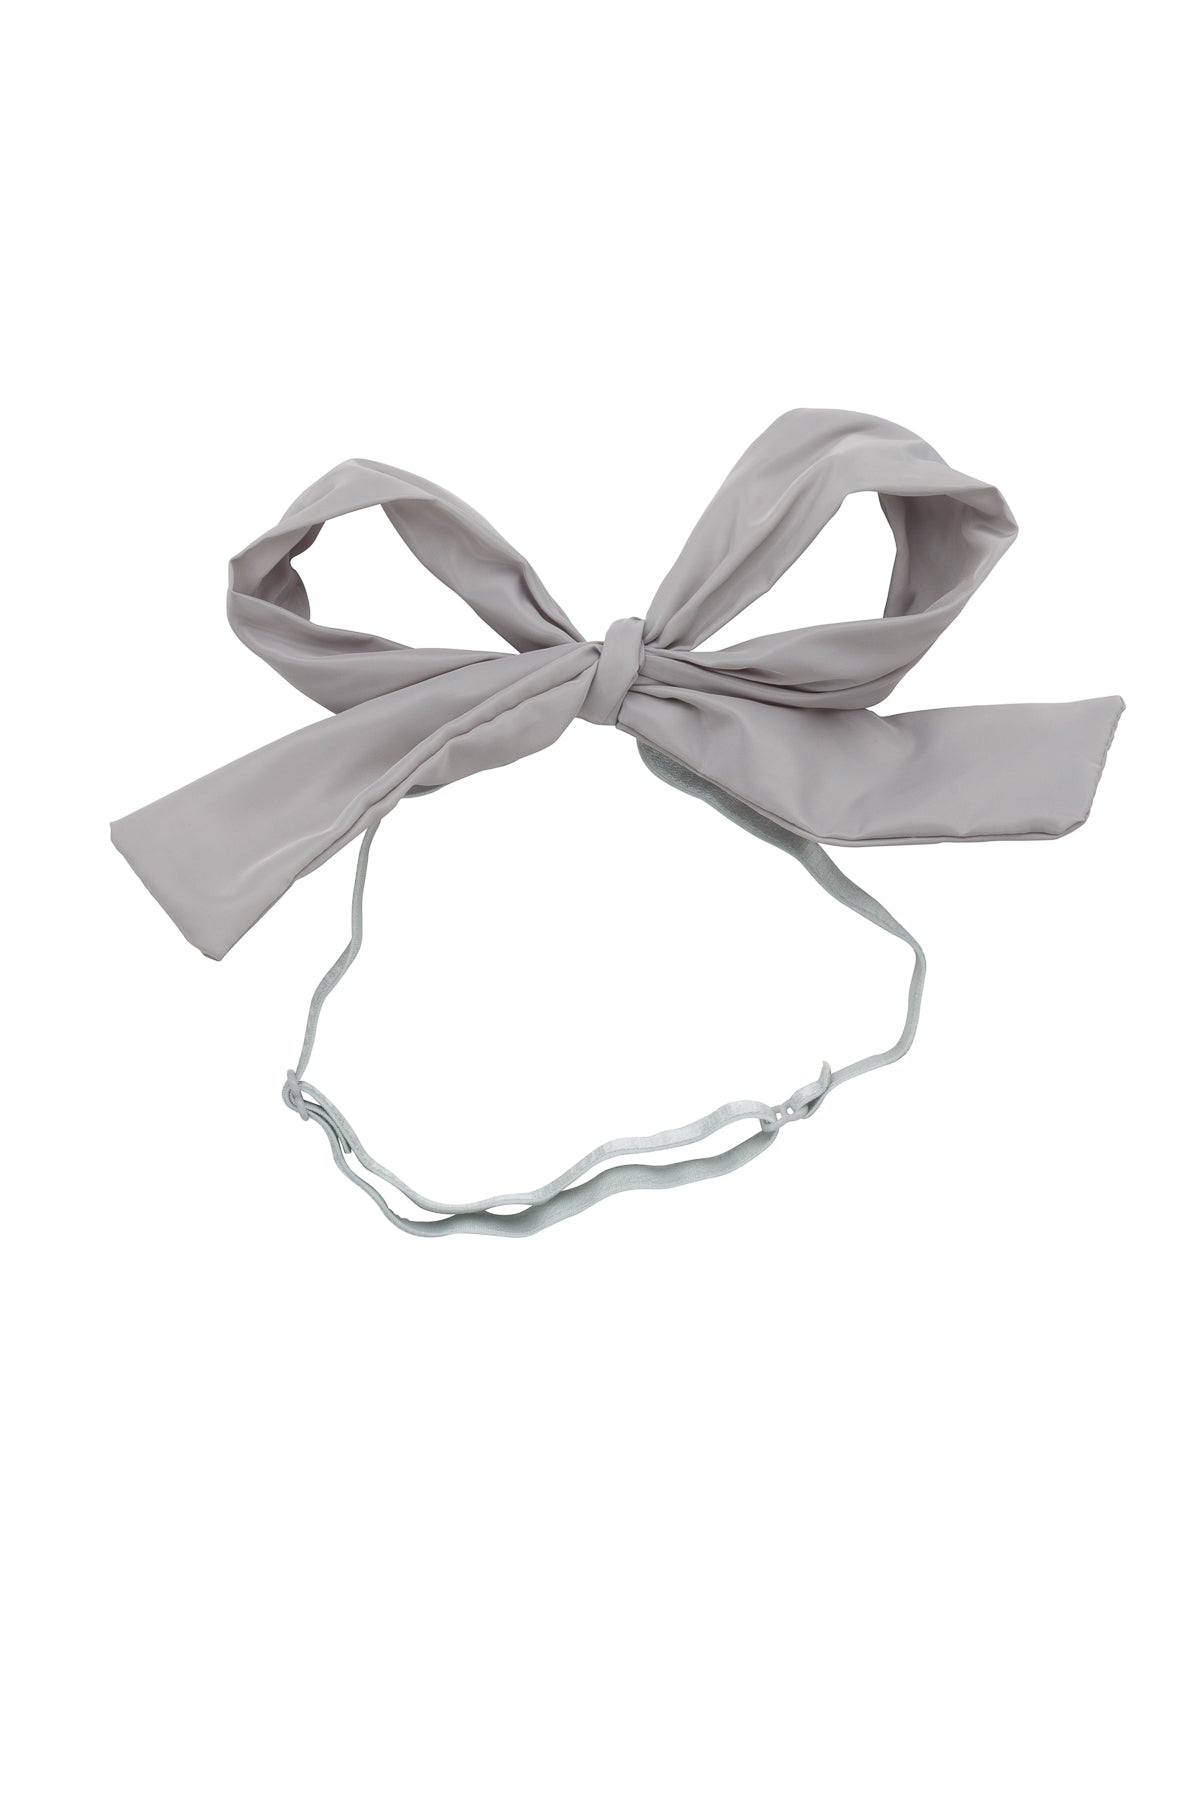 Party Bow Taffeta Wrap - Light Grey - PROJECT 6, modest fashion